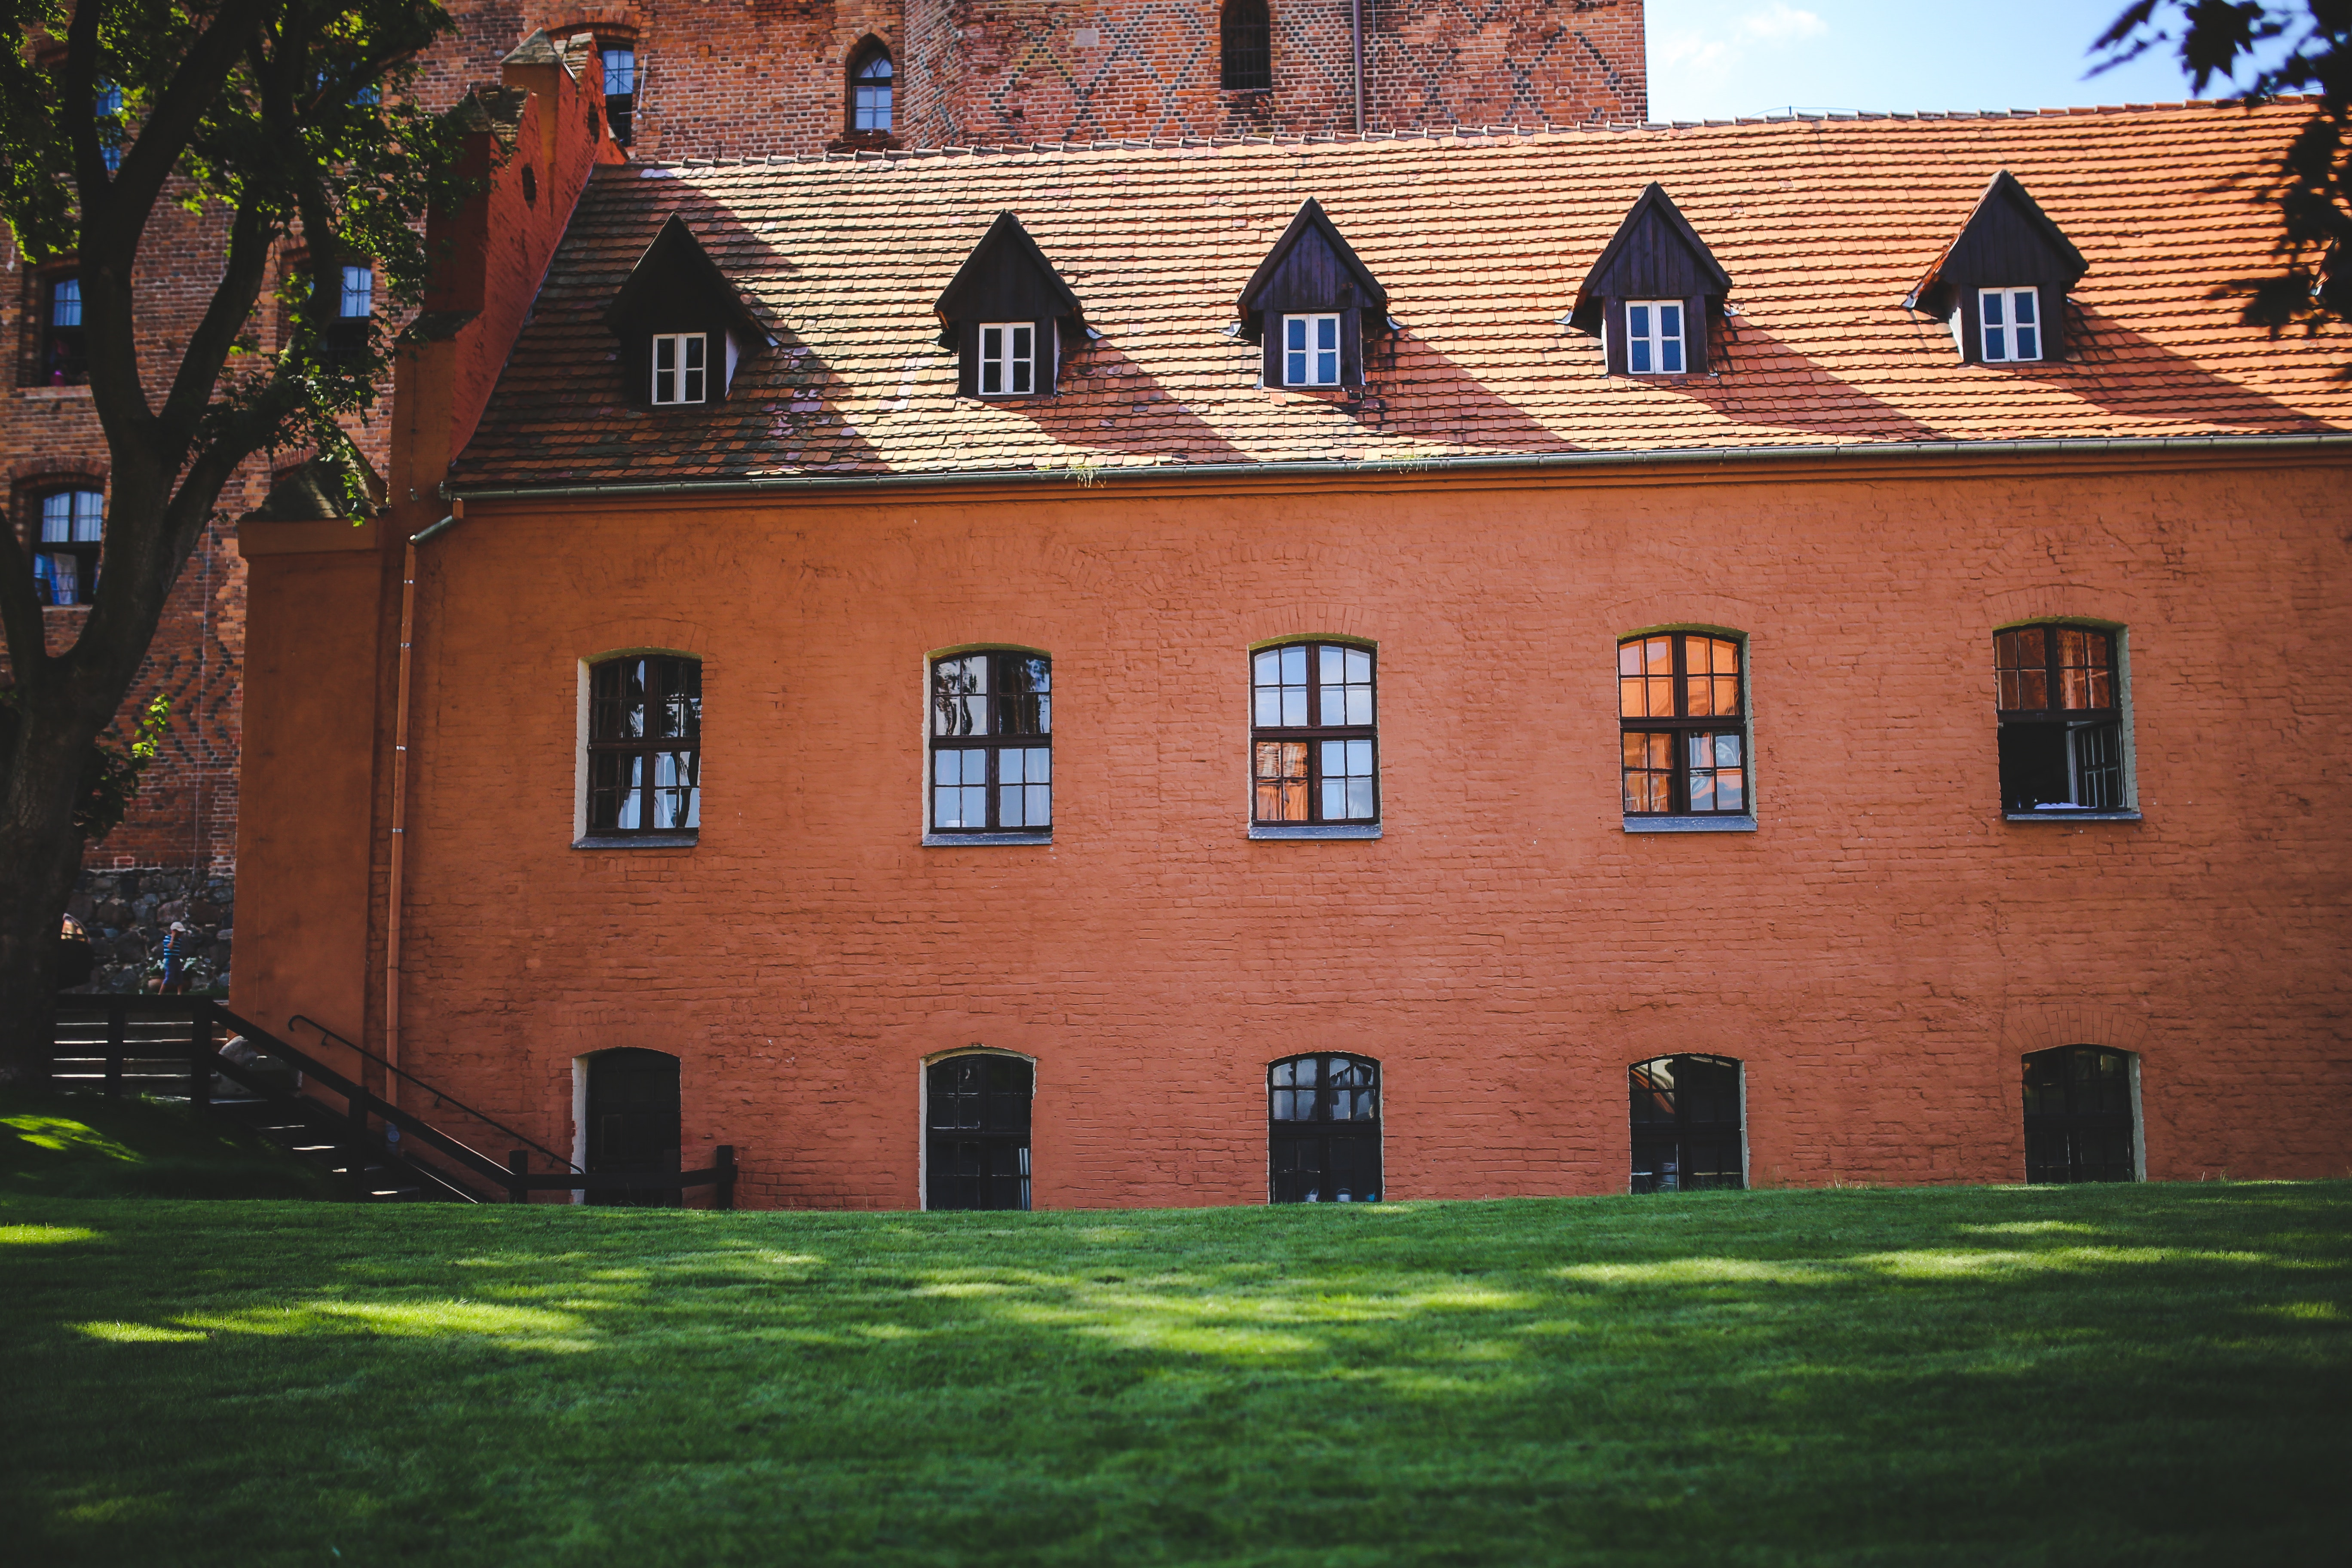 The wall of the castle, Architecture, Orange, Wall, Vintage, HQ Photo